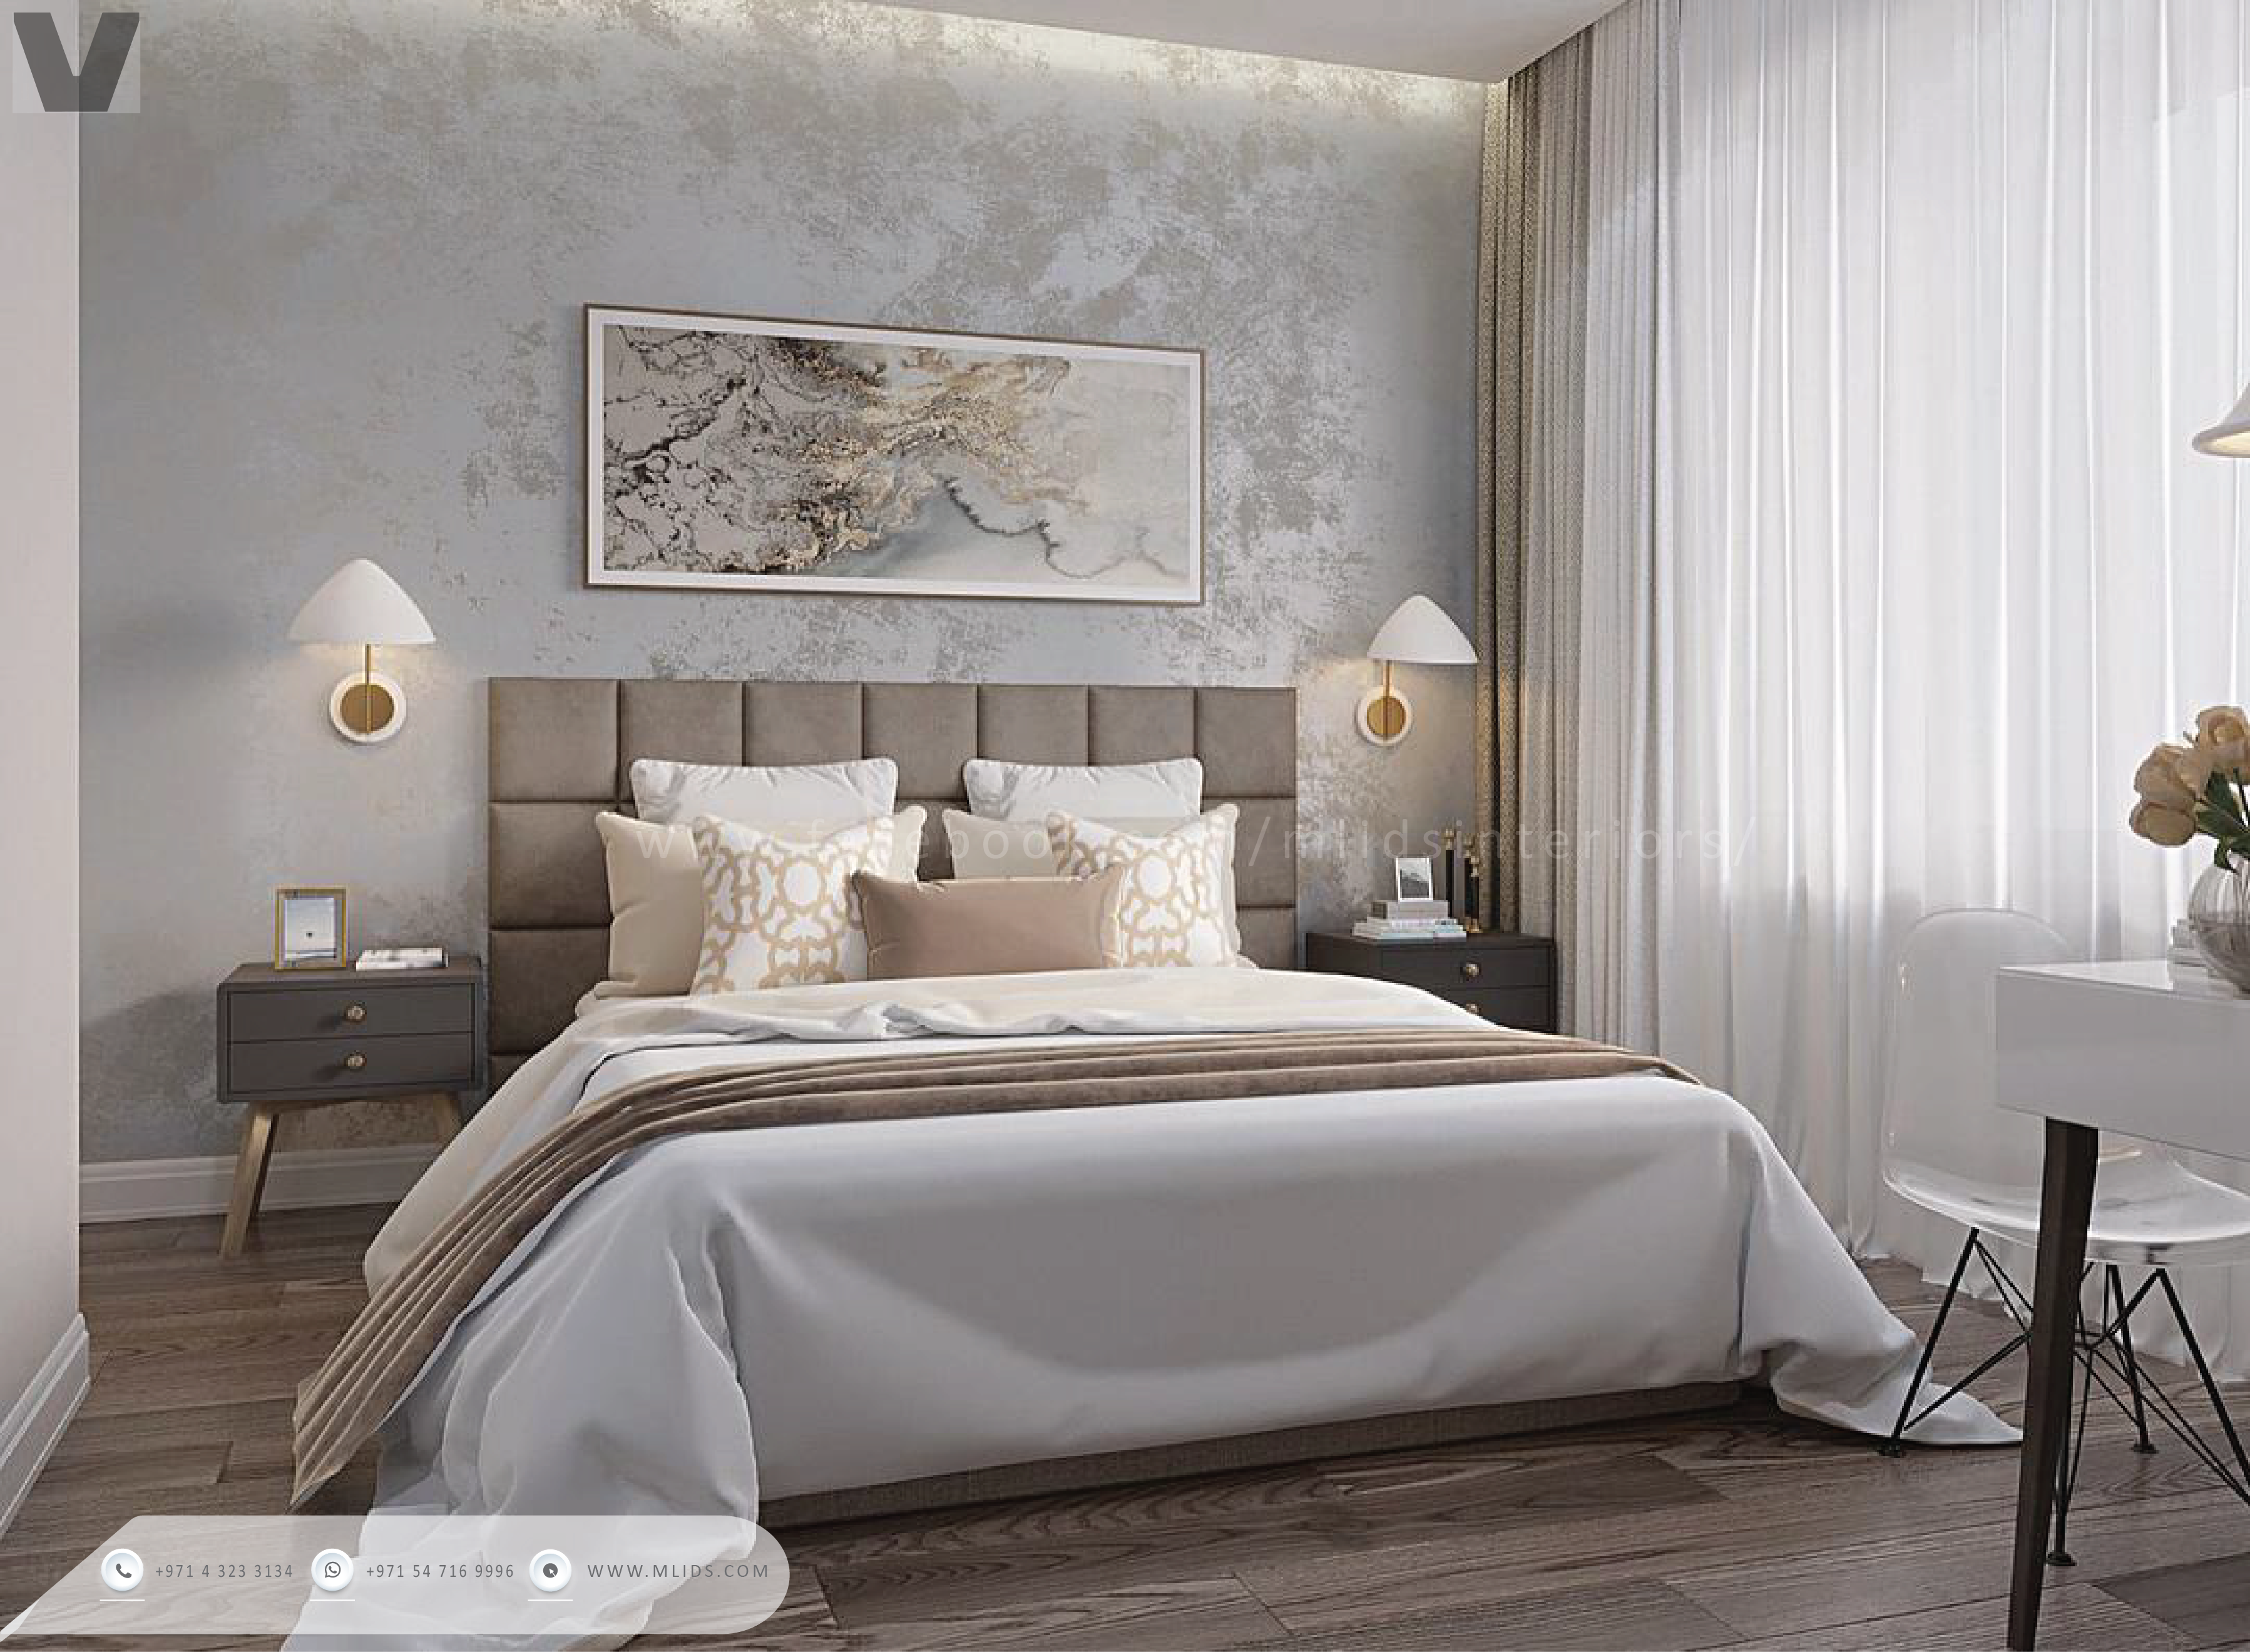 Wallpaper be it classic or modern works to add depth to